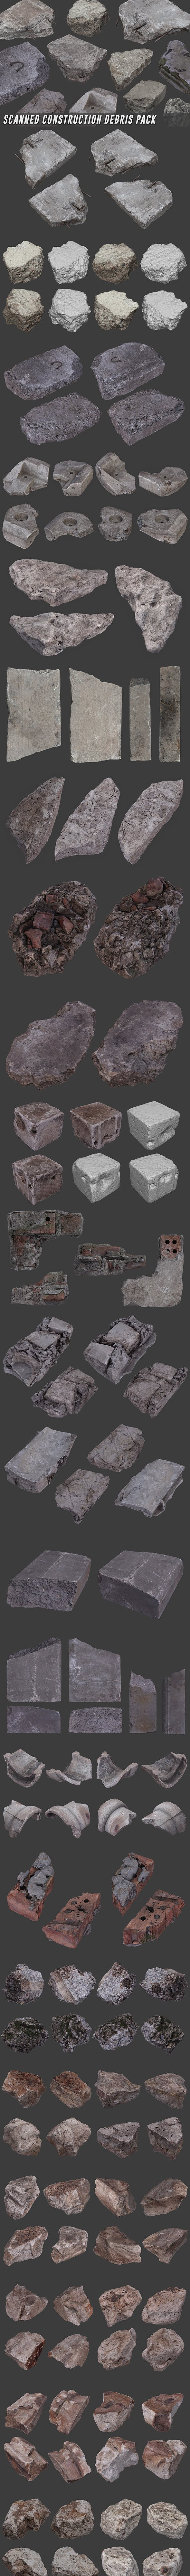 Scanned Construction Debris Pack - 3DOcean Item for Sale